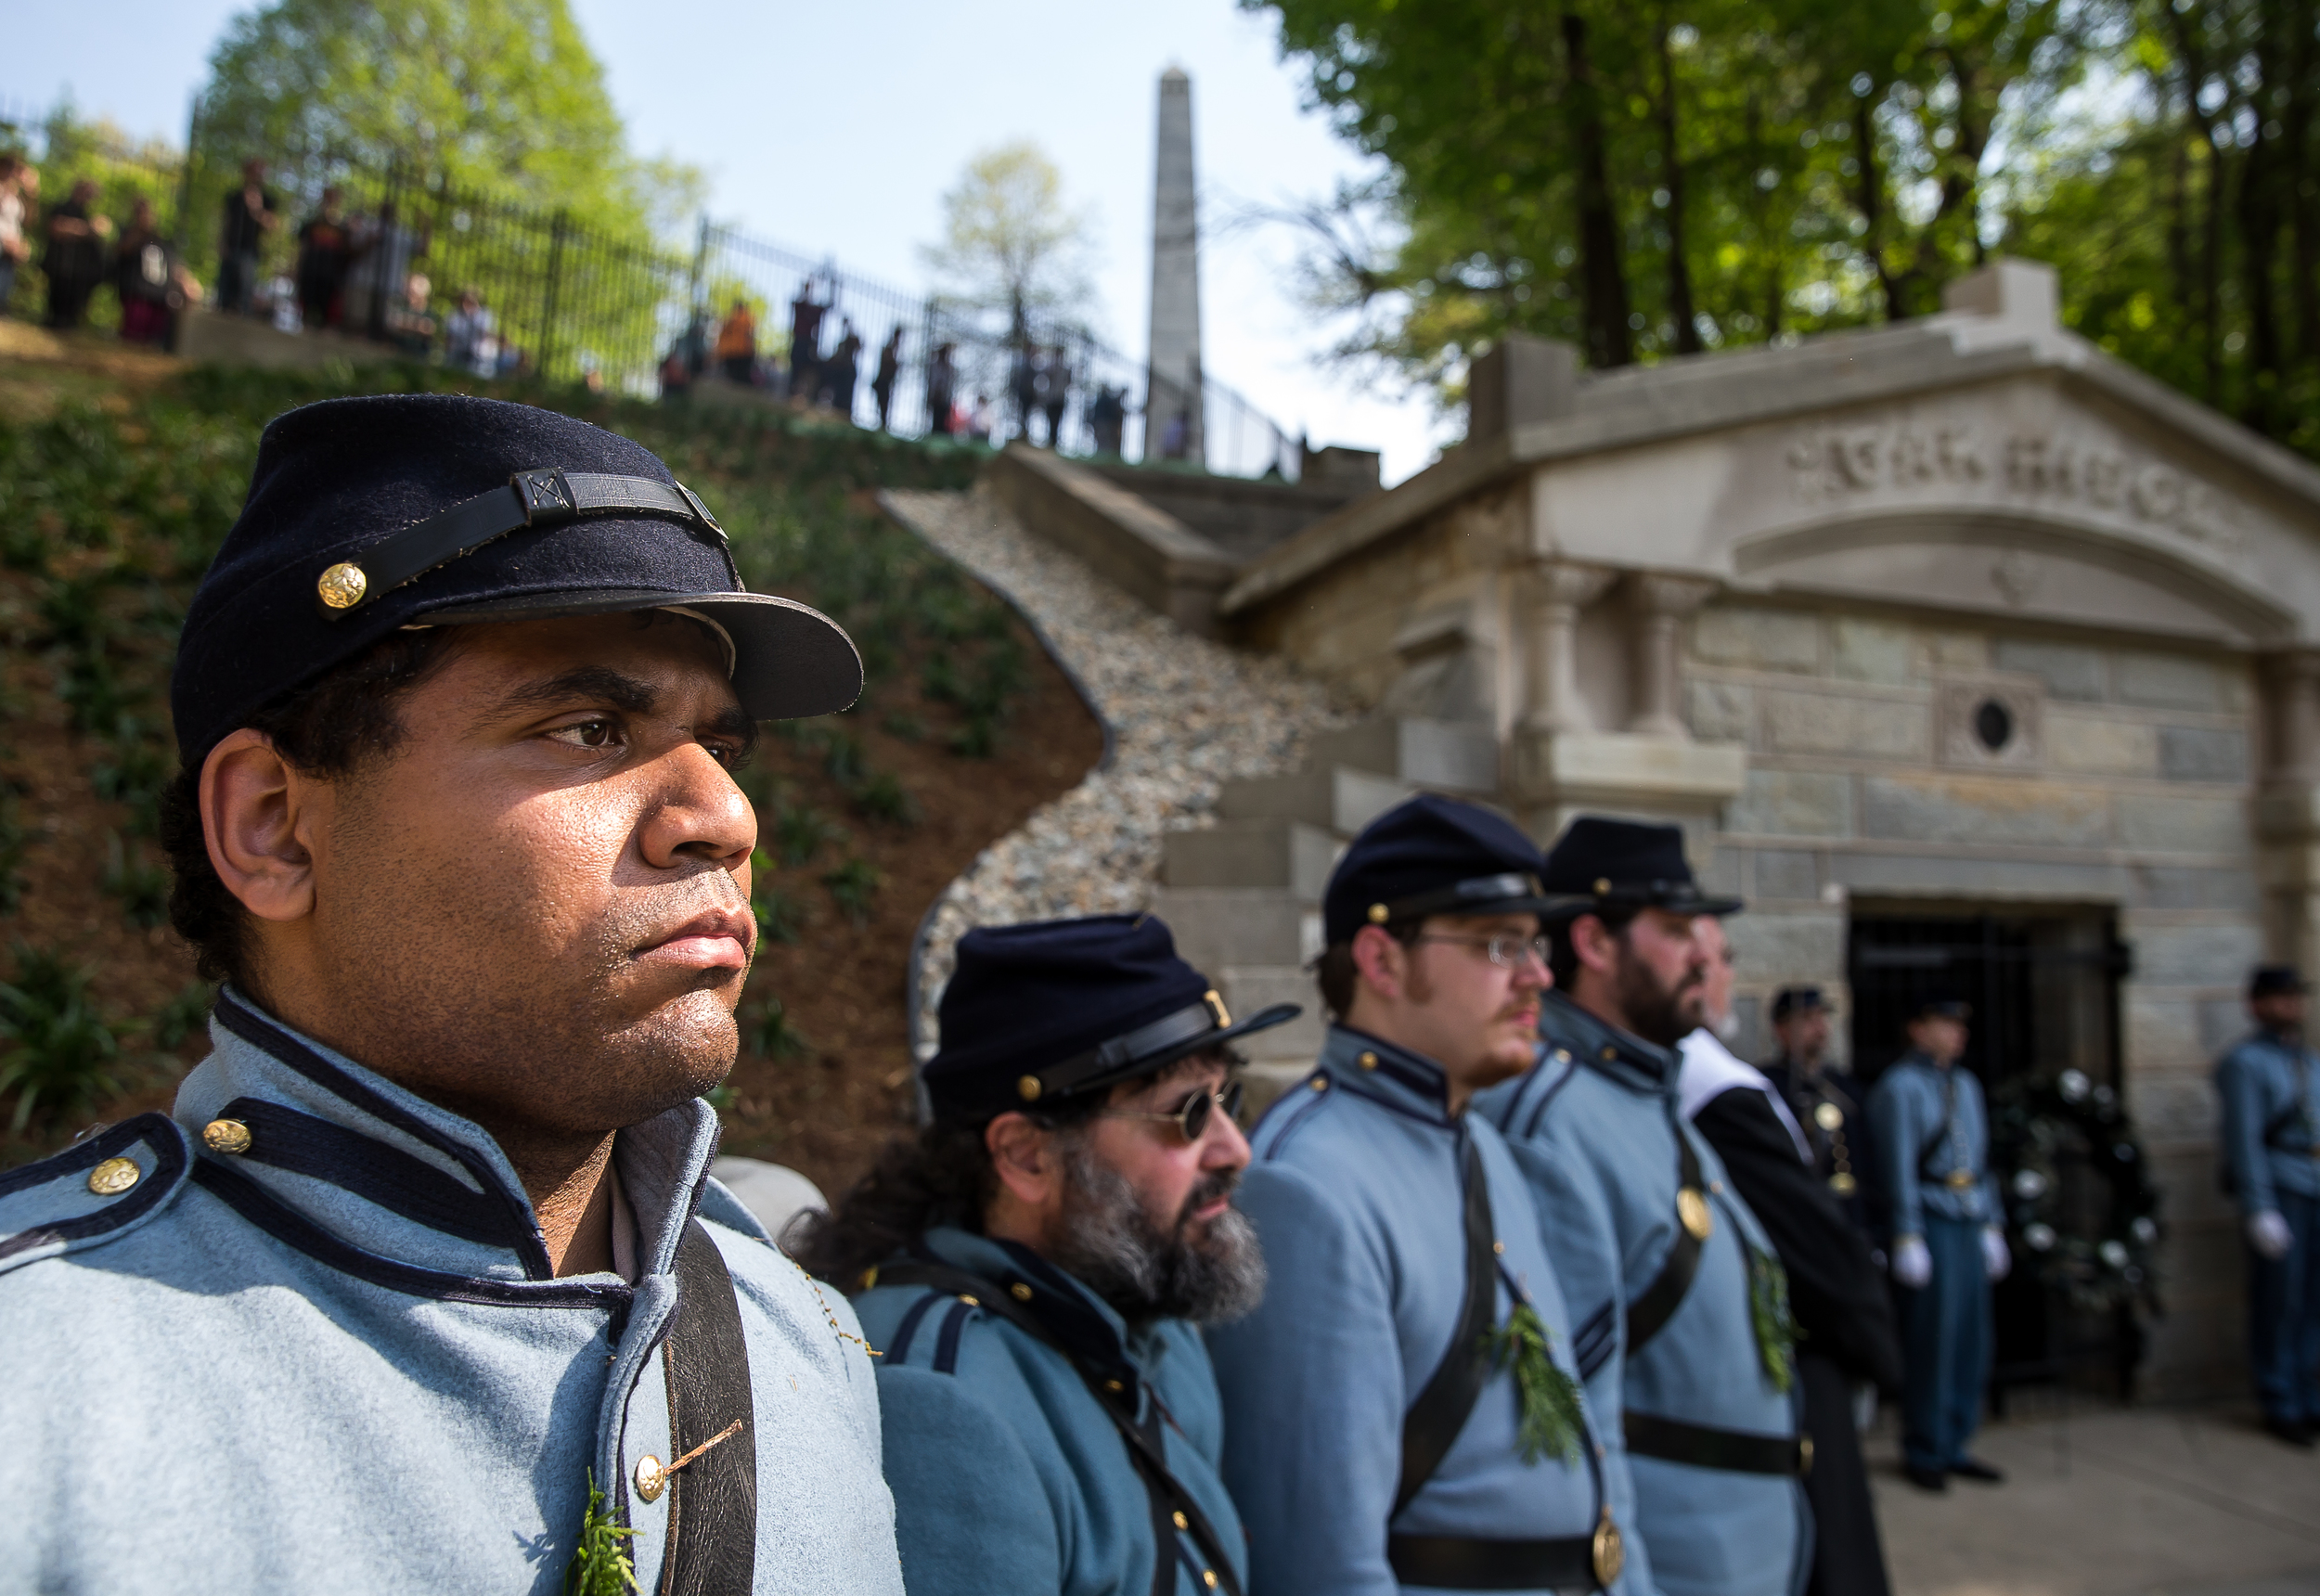 Ryan Meehan, a member of the Veterans Reserve Corps, stands at attention after Lincoln's casket was placed in the original receiving vault in Oak Ridge Cemetery during the 2015 Lincoln Funeral Re-enactment, Sunday, May 3, 2015, in Springfield, Ill. Justin L. Fowler/The State Journal-Register